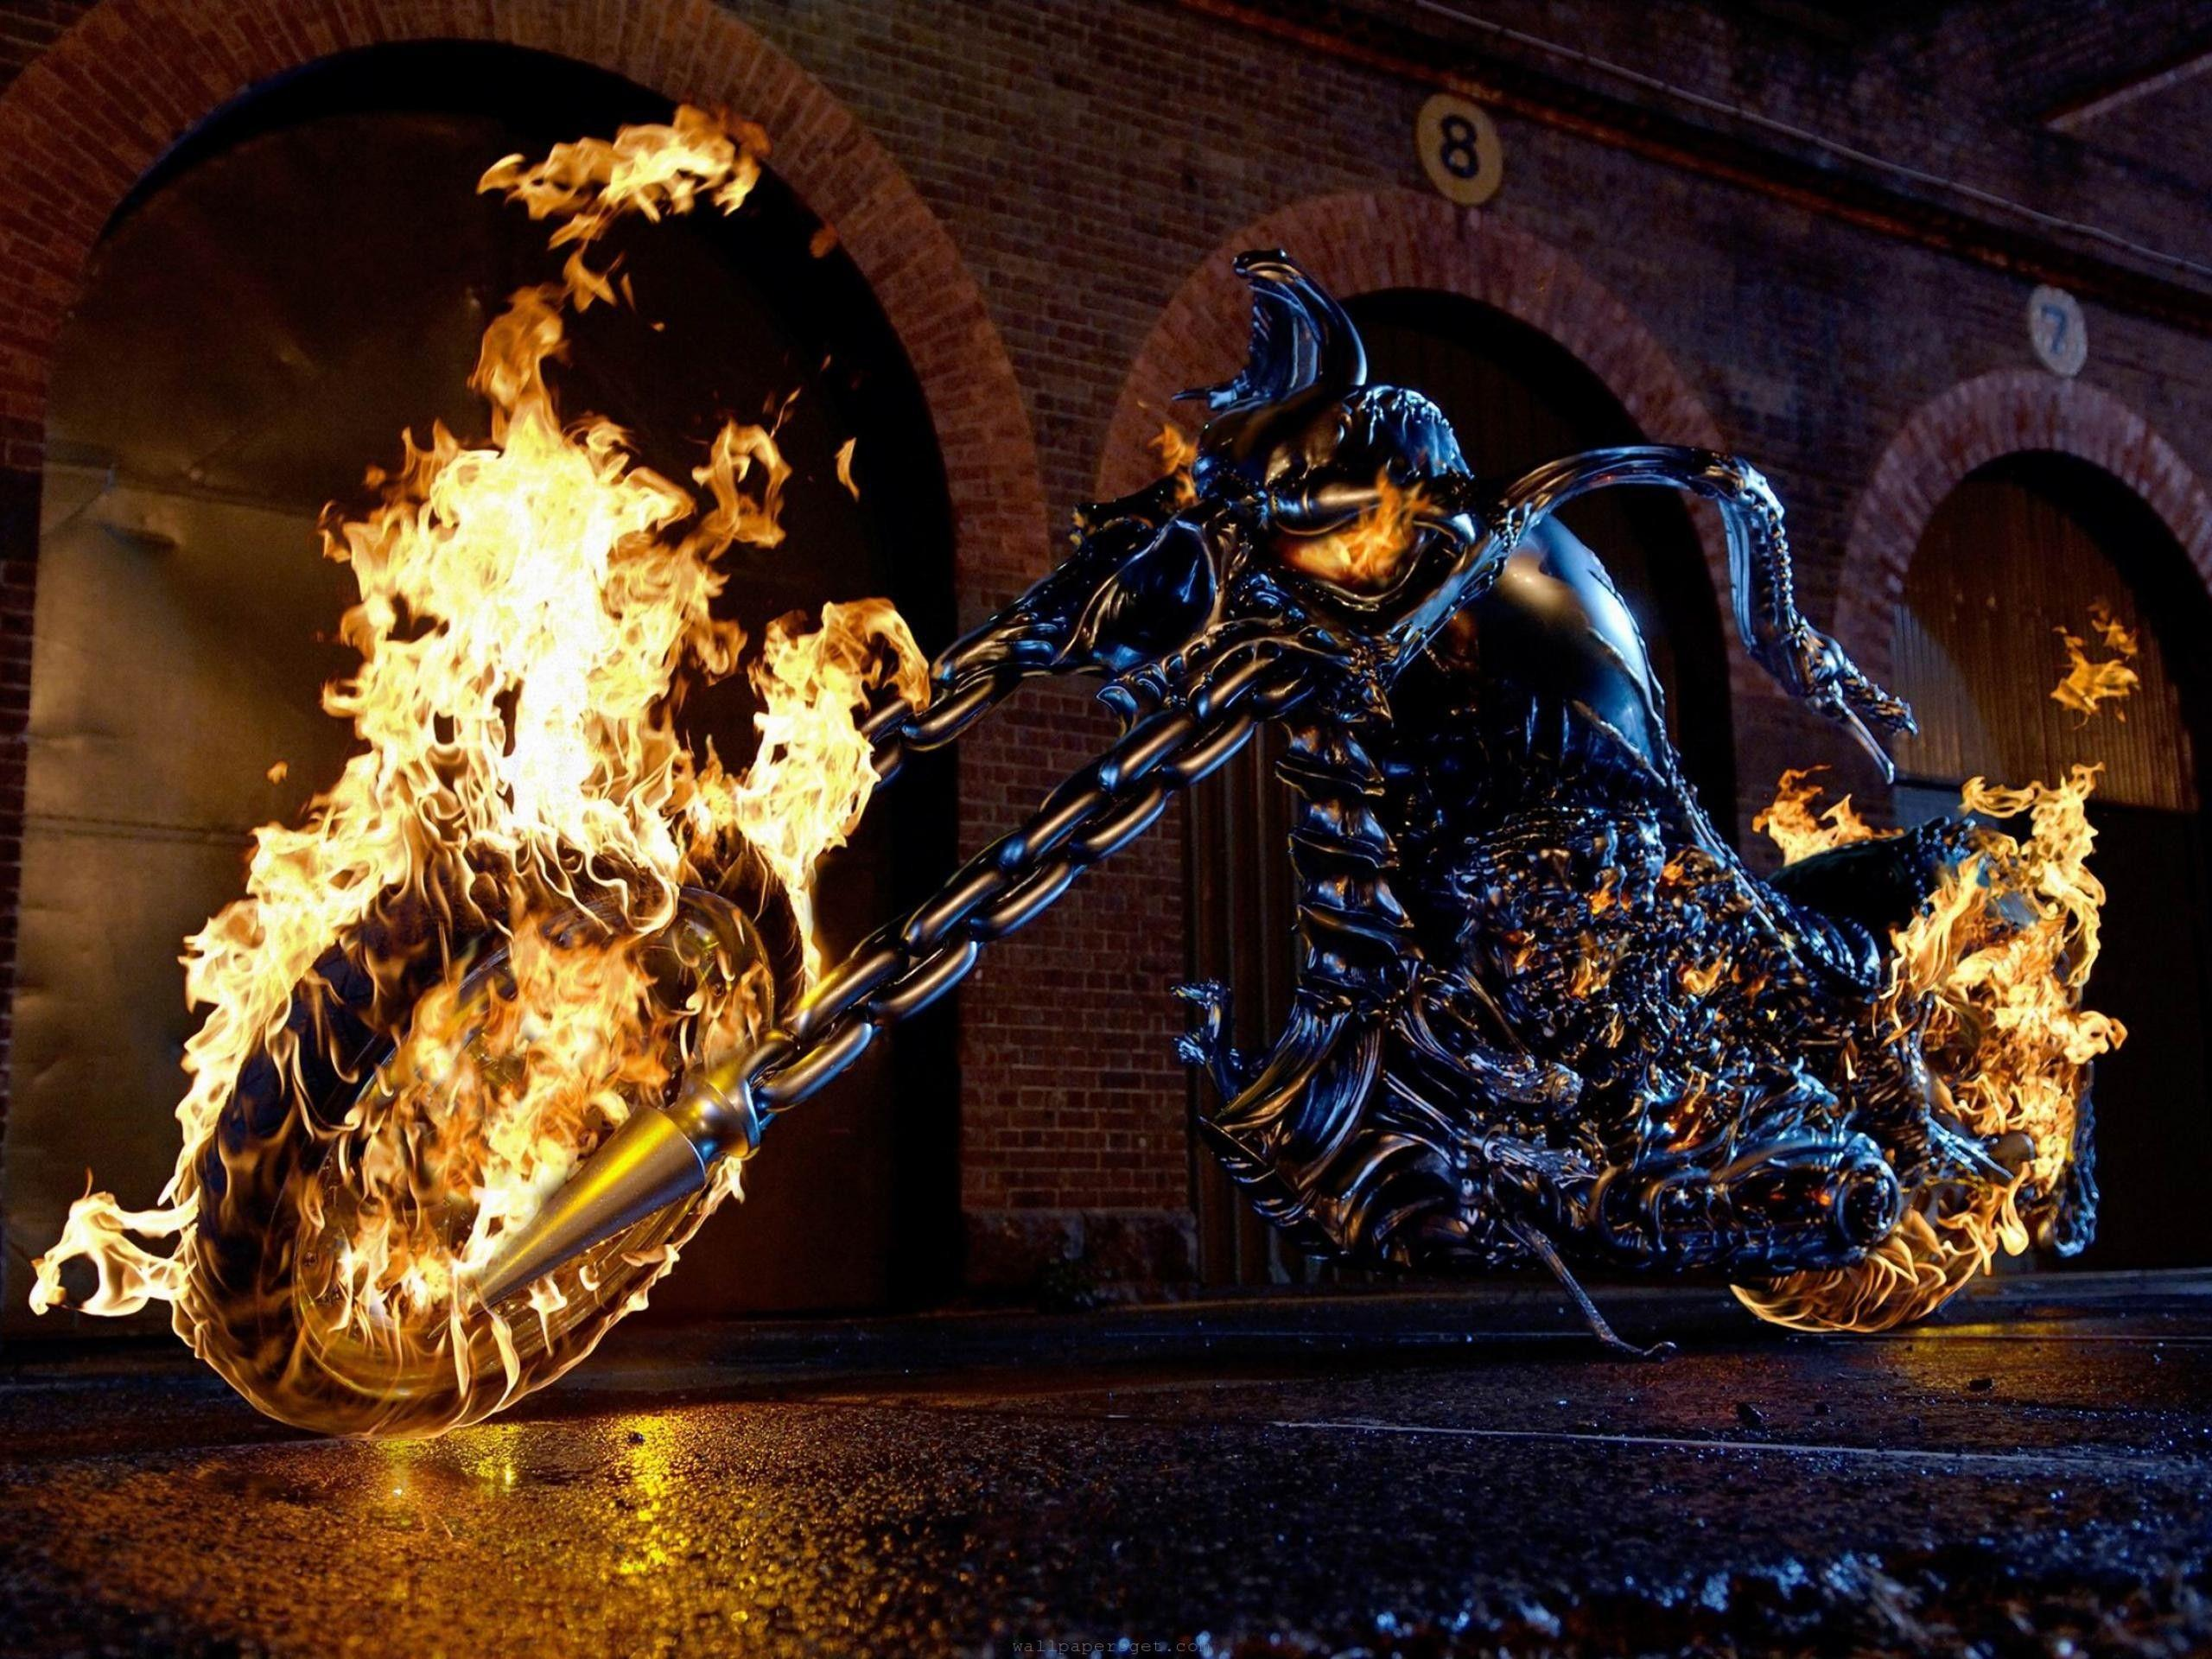 Download the Ghost Rider Bike Wallpaper, Ghost Rider Bike iPhone